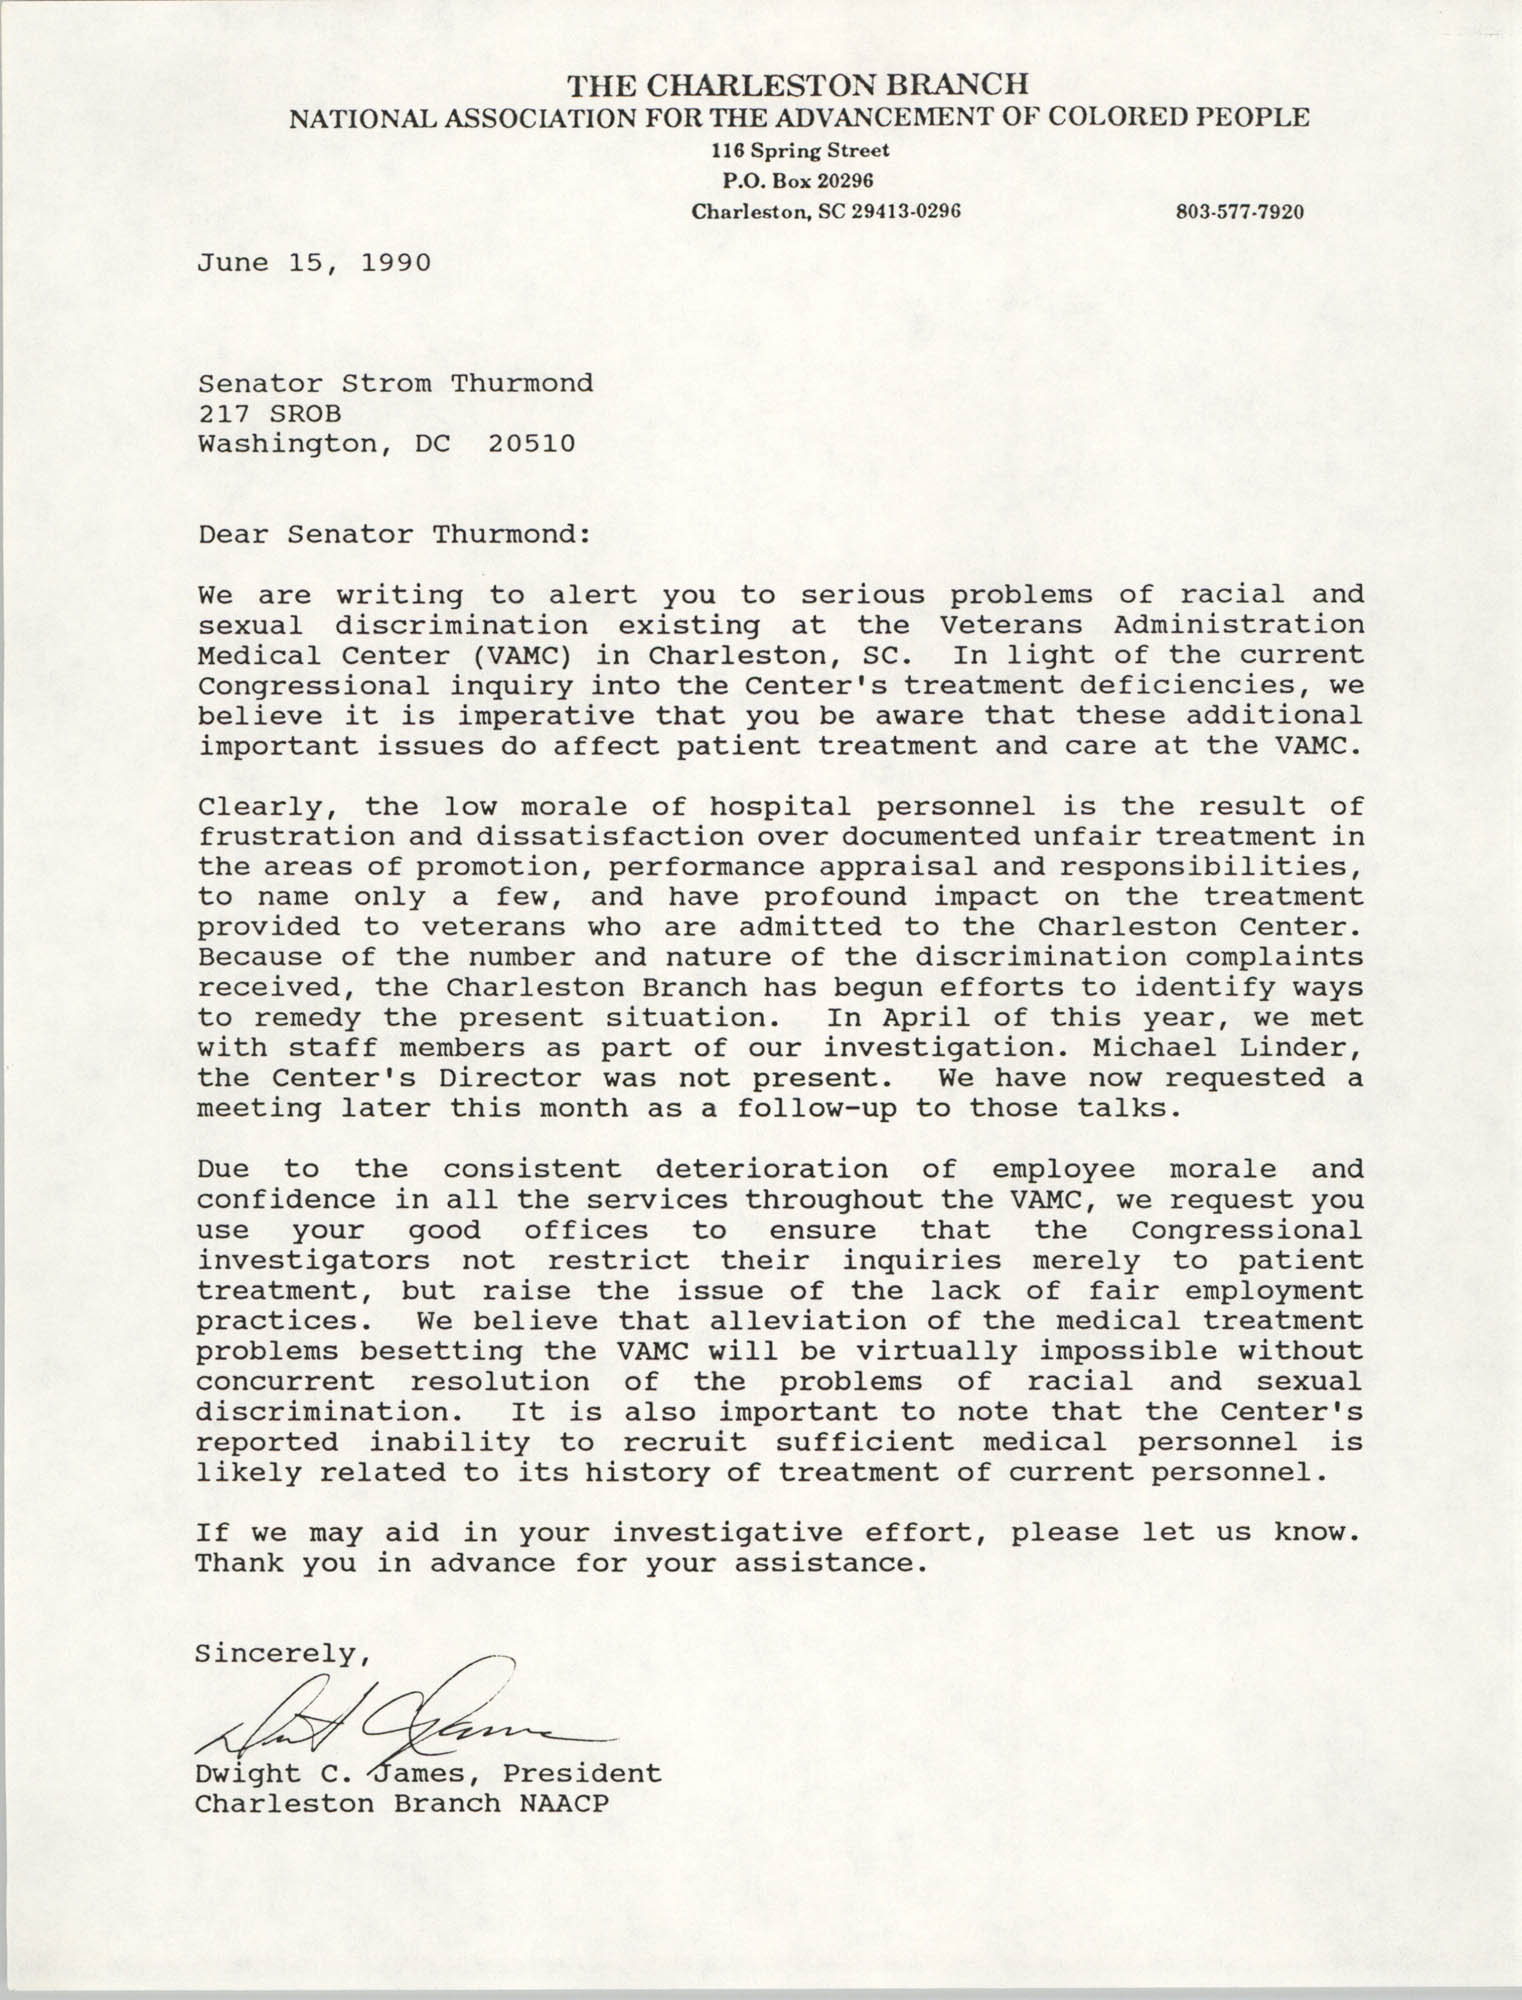 Letter from Dwight C. James to Strom Thurmond, June 15, 1990